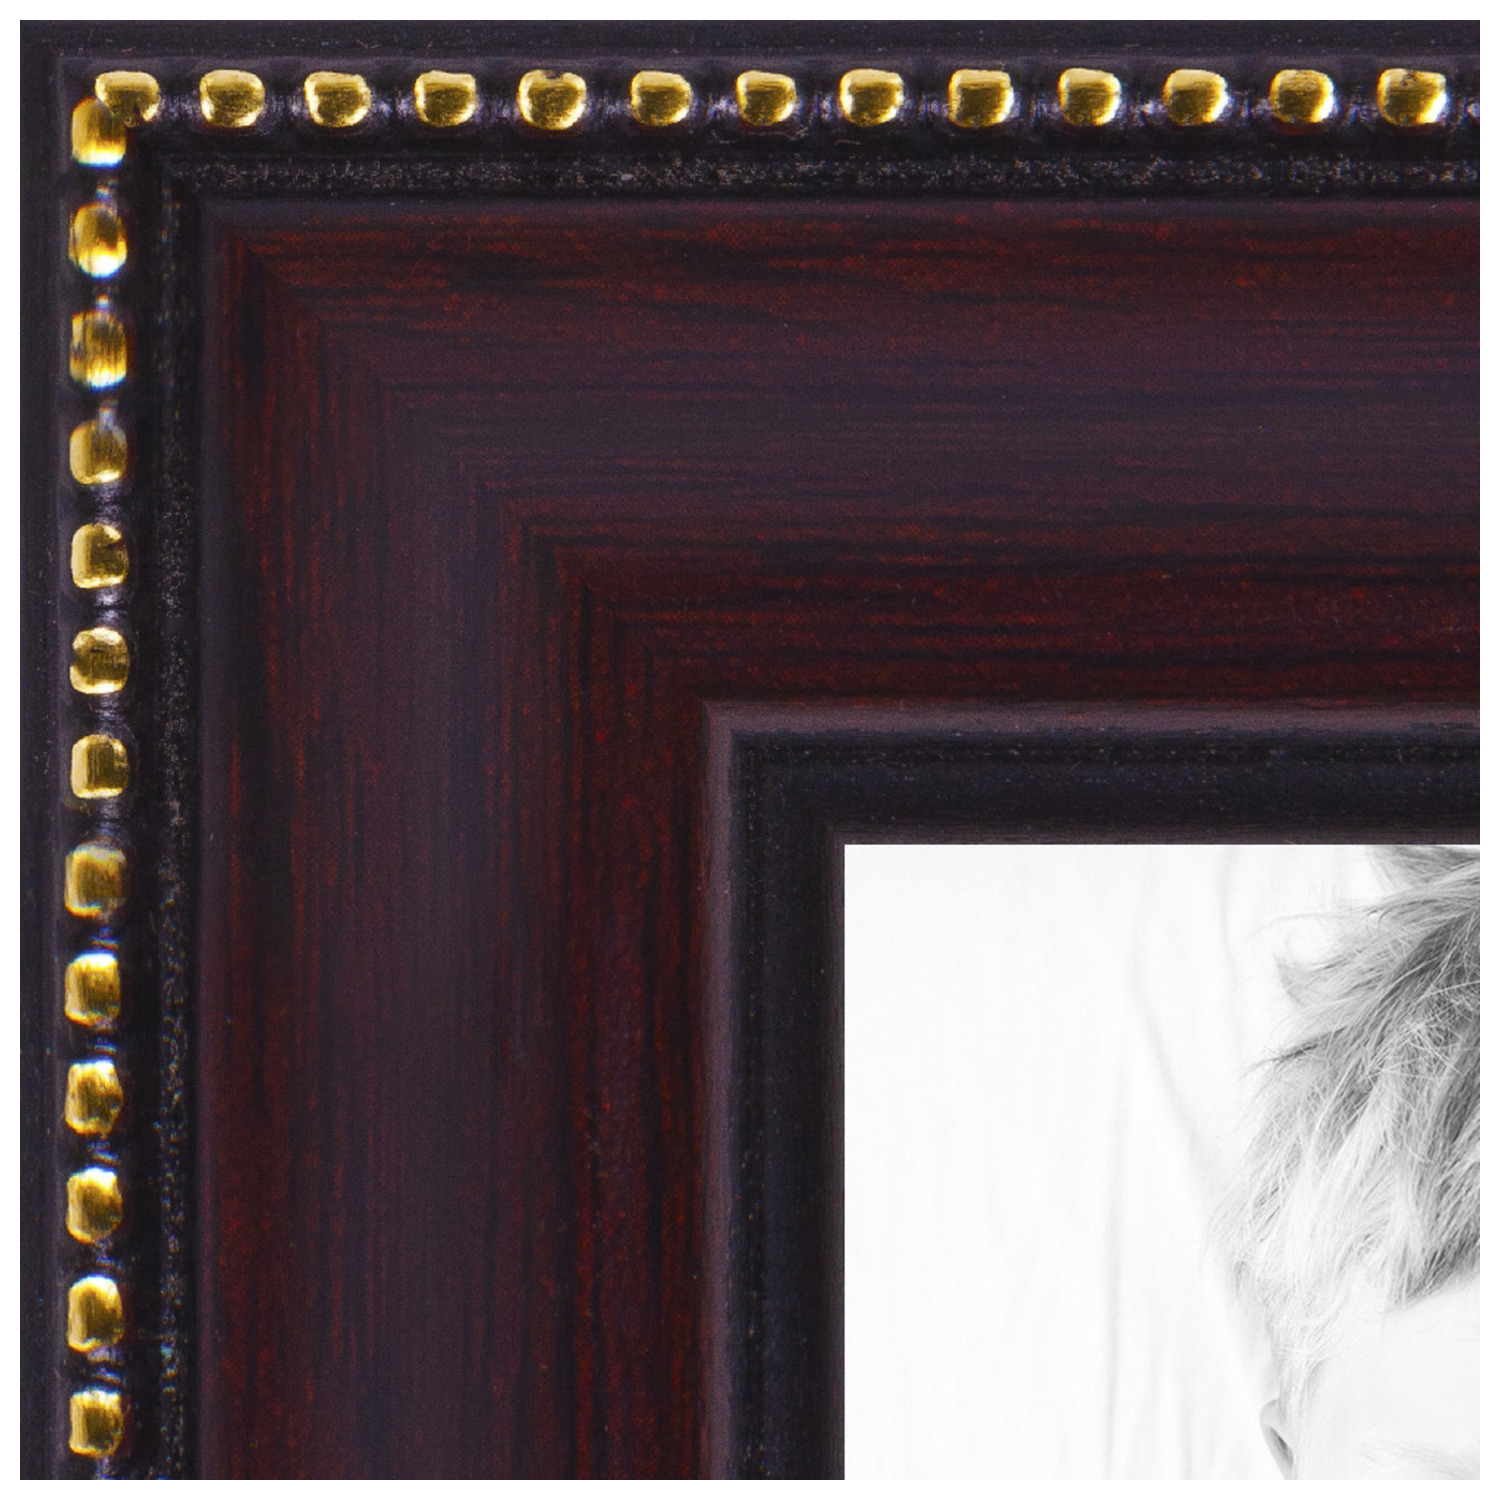 arttoframes 12x14 inch mahogany picture frame this brown wood poster frame is great for your art or photos comes with regular glass 4412